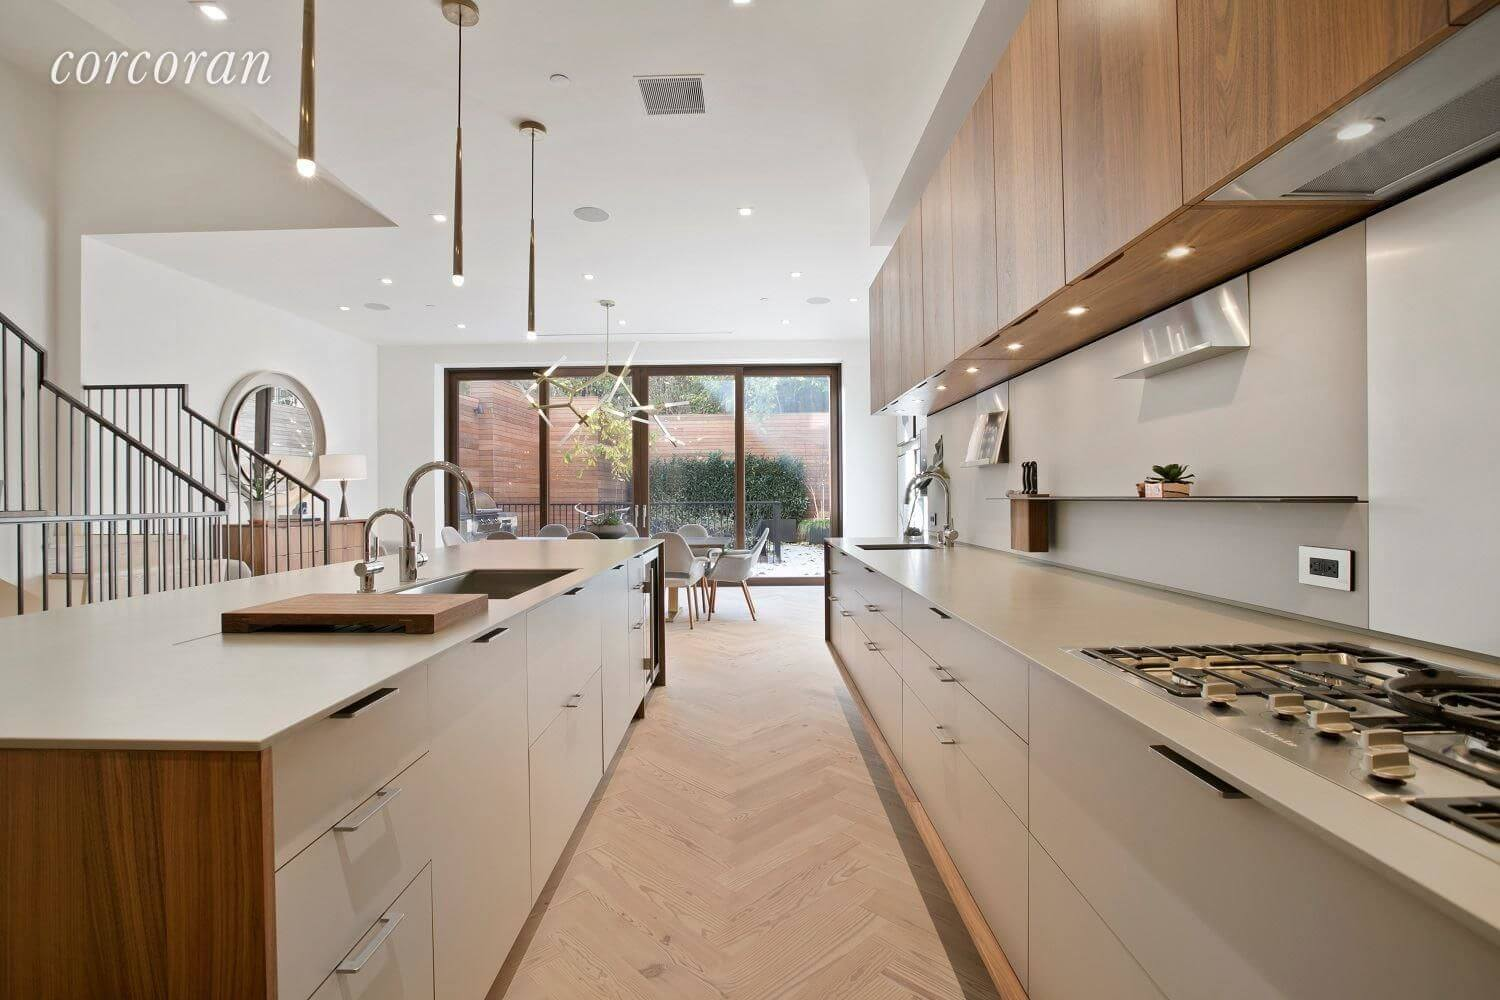 Used kitchen cabinets brooklyn ny - Brooklyn Homes For Sale In Williamsburg At 138 N 1st Street Surprising Kitchen Cabinets Brooklyn New York